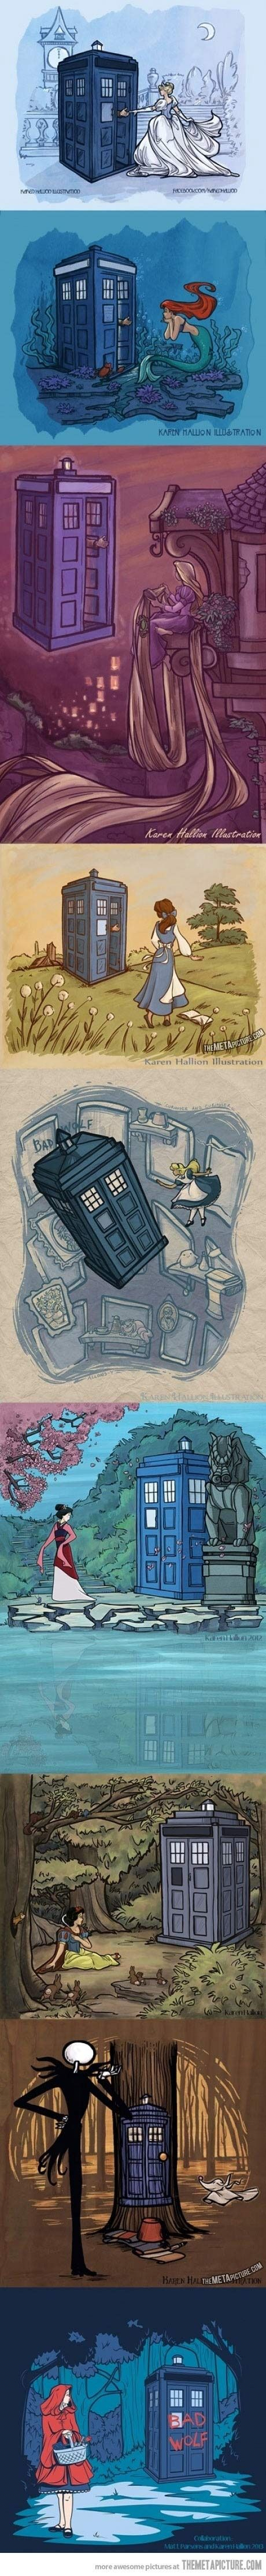 I could totally see Belle as a companion